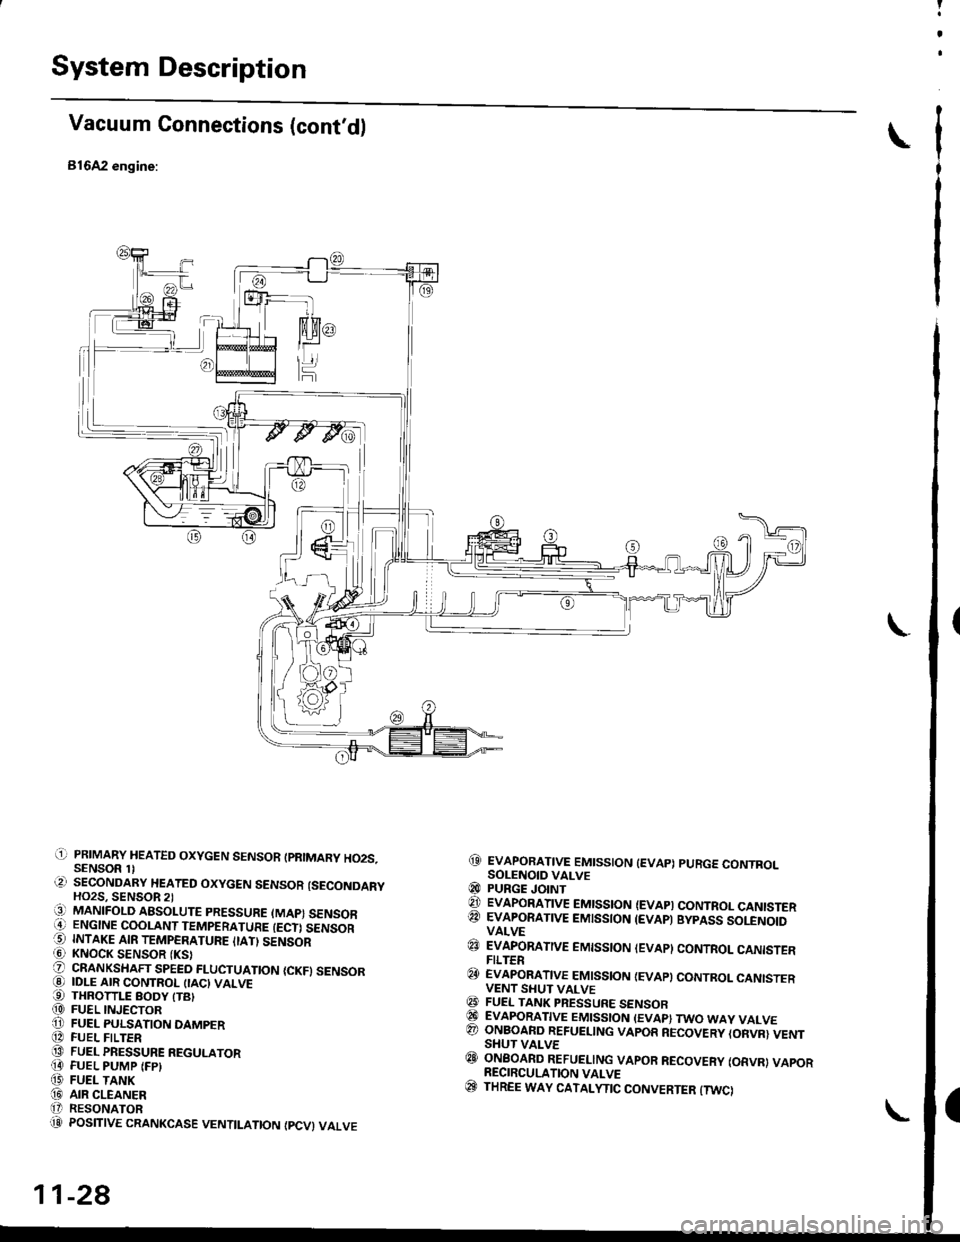 SubaruForesterAutomaticTransmissionControlSystemWiringDiagram as well 2009 08 10 044348 img040 likewise 2012 Hyundai Elantra Car Radio Stereo Wiring Diagram together with w960 6068 296 furthermore d348f4a60a3a590f mercedes benz sl 350 mercedes circuit diagrams as well  besides benz audio gate way control unit how problem n93 06 640x330 besides  furthermore  together with 0996b43f80237188 additionally 2010 01 26 023352 Installed. on mercedes benz stereo wire diagrams